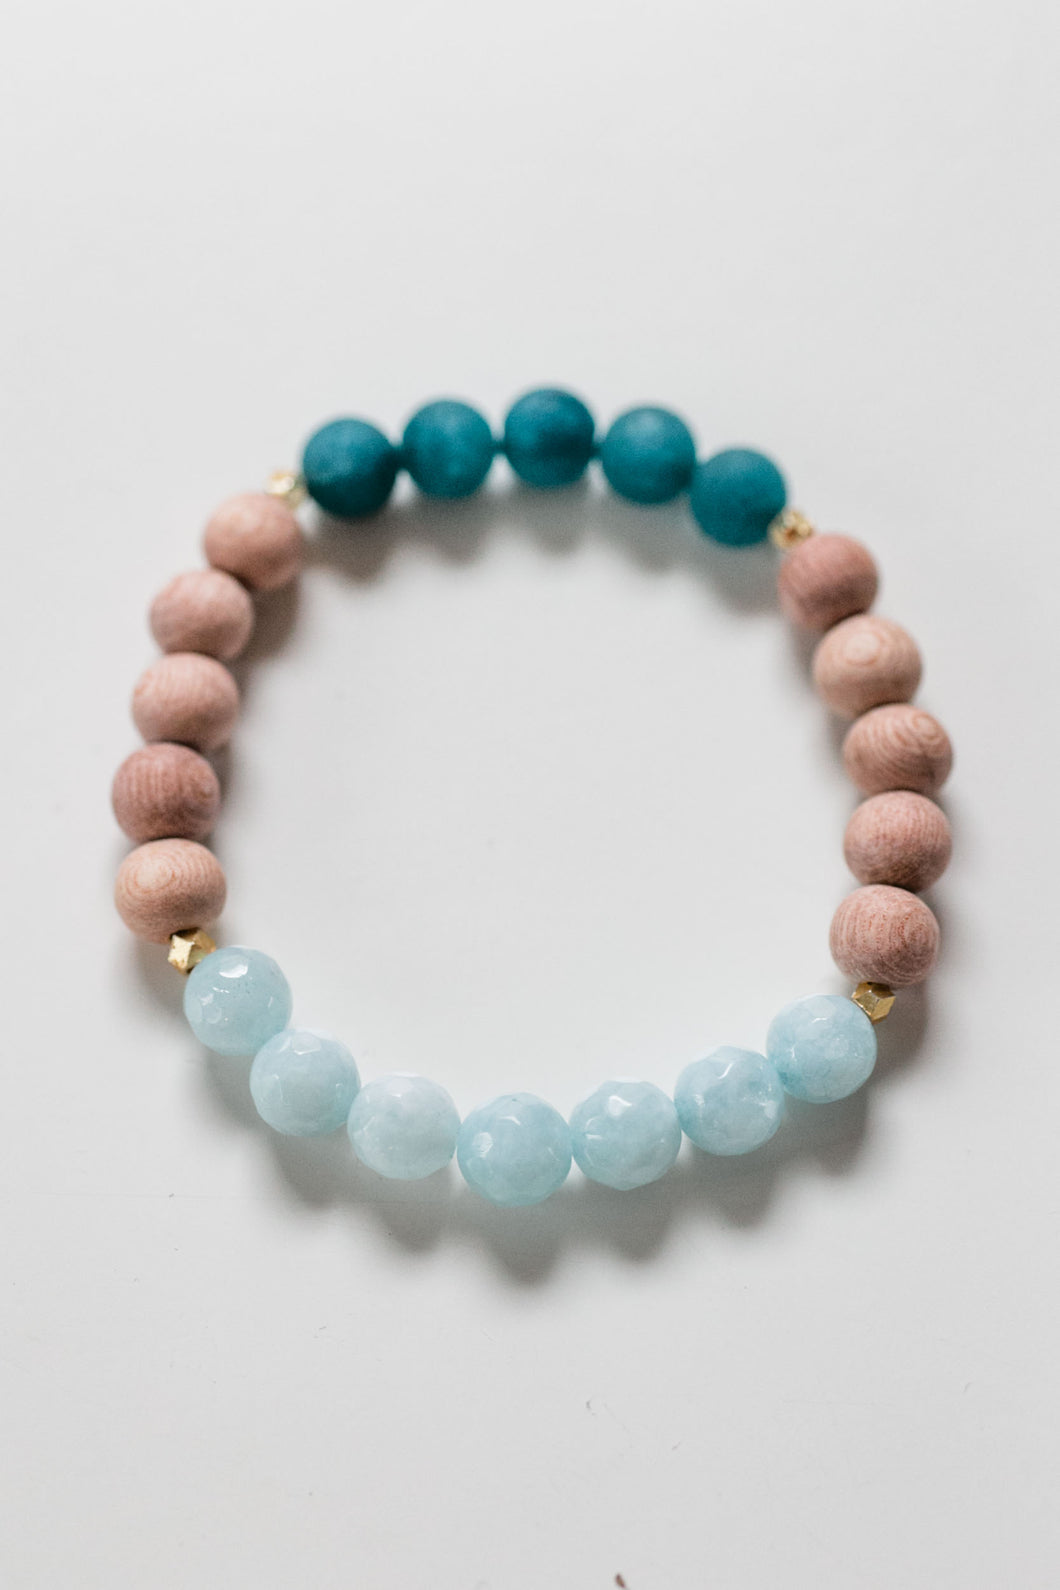 Faceted Aqua and Teal Jade Bead Diffuser Bracelet